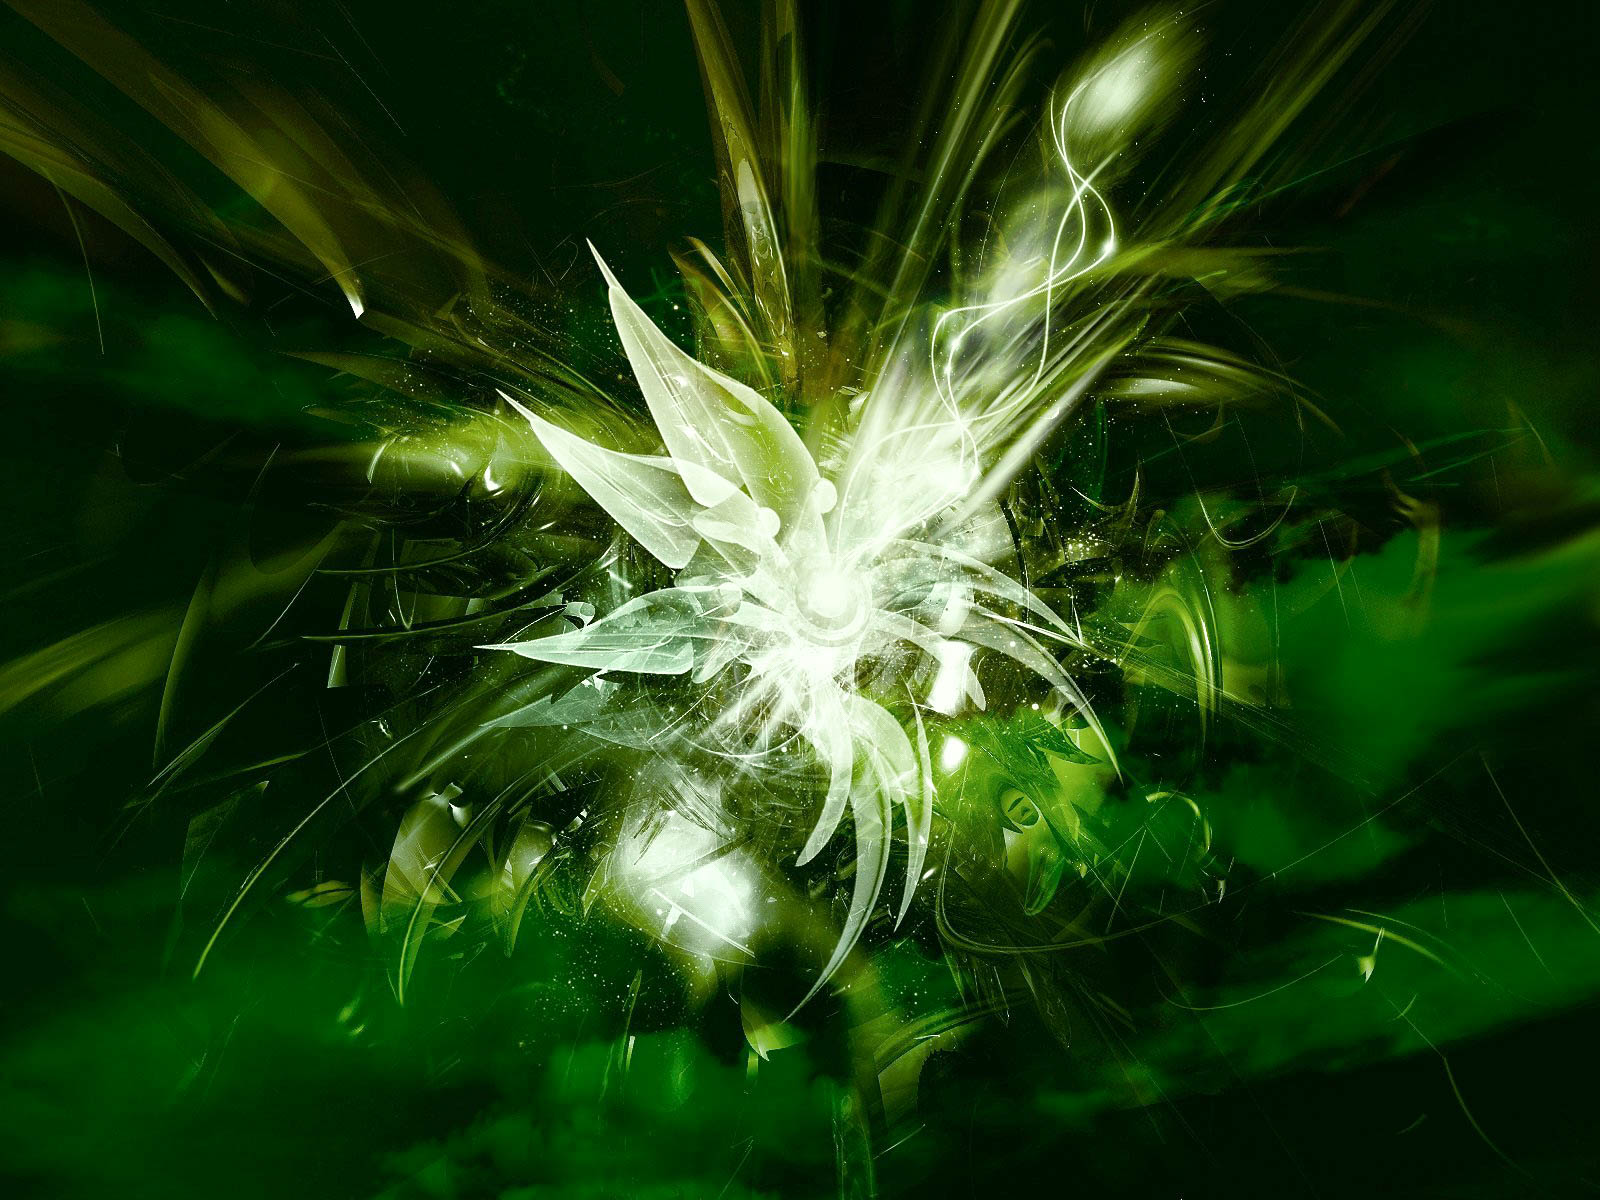 green abstract hd wallpapers in high resolution